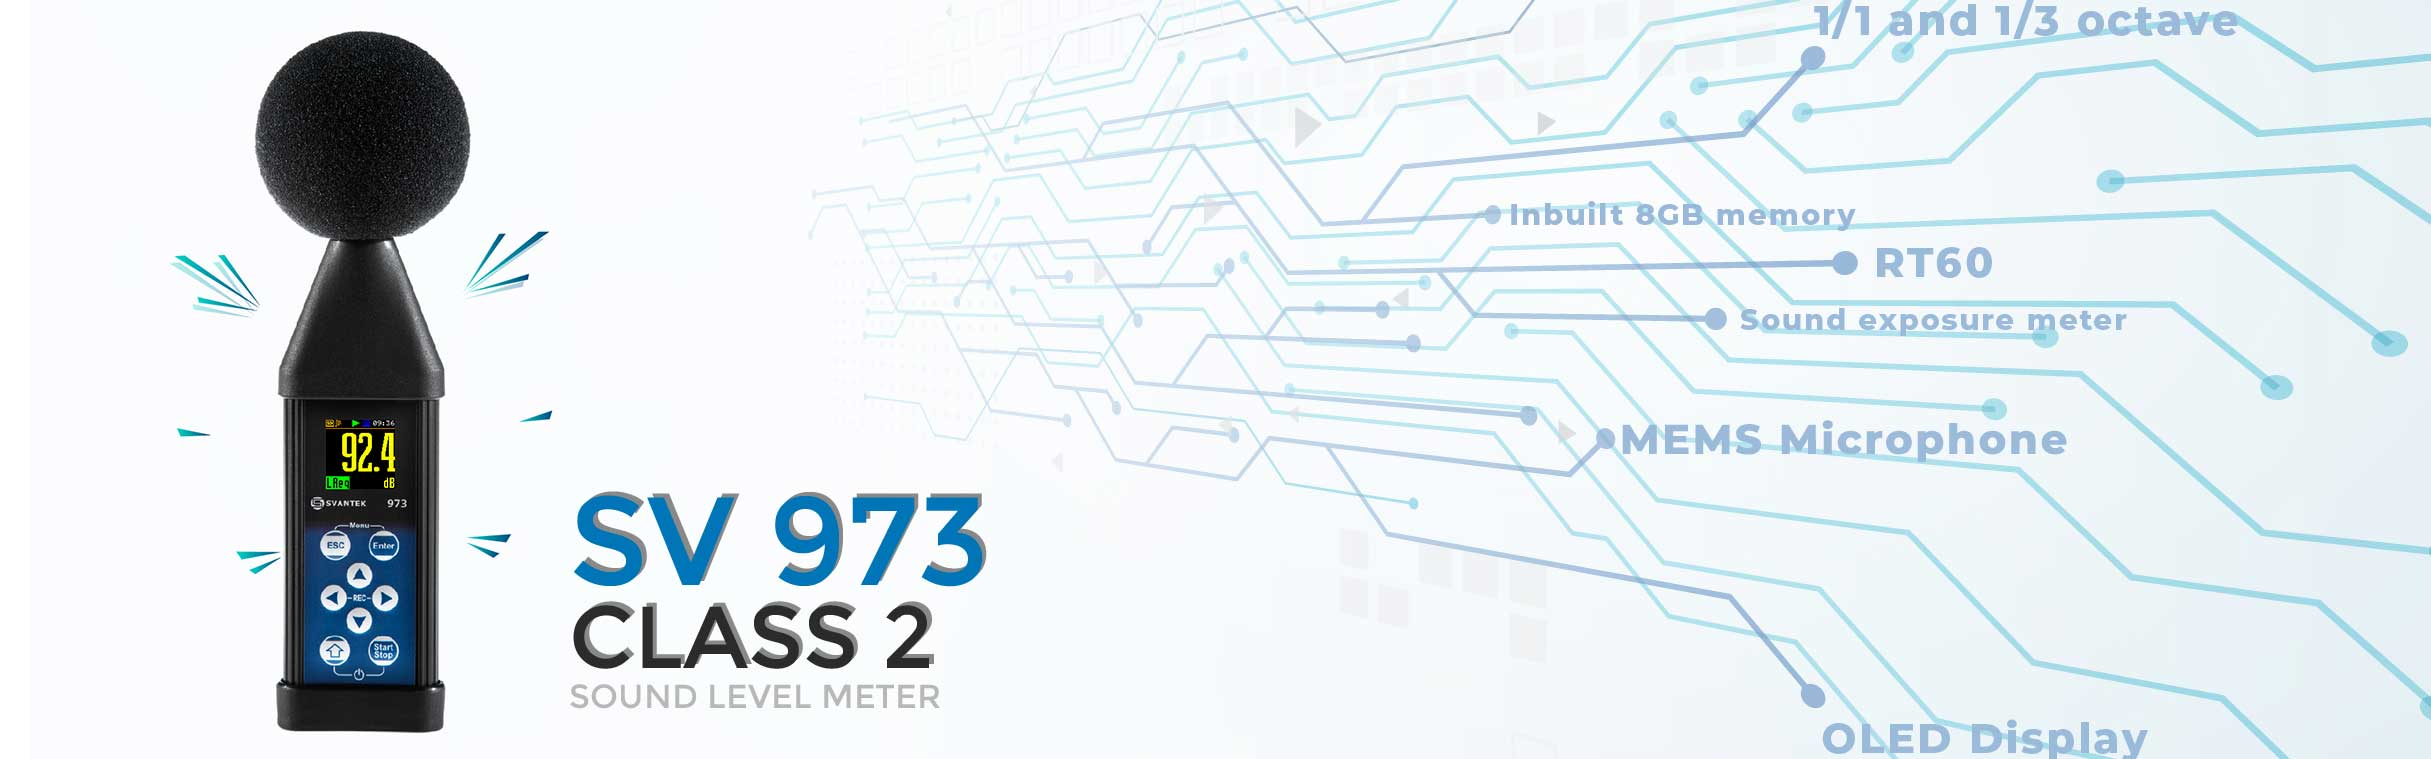 Graphic banner showcasing the SV 973